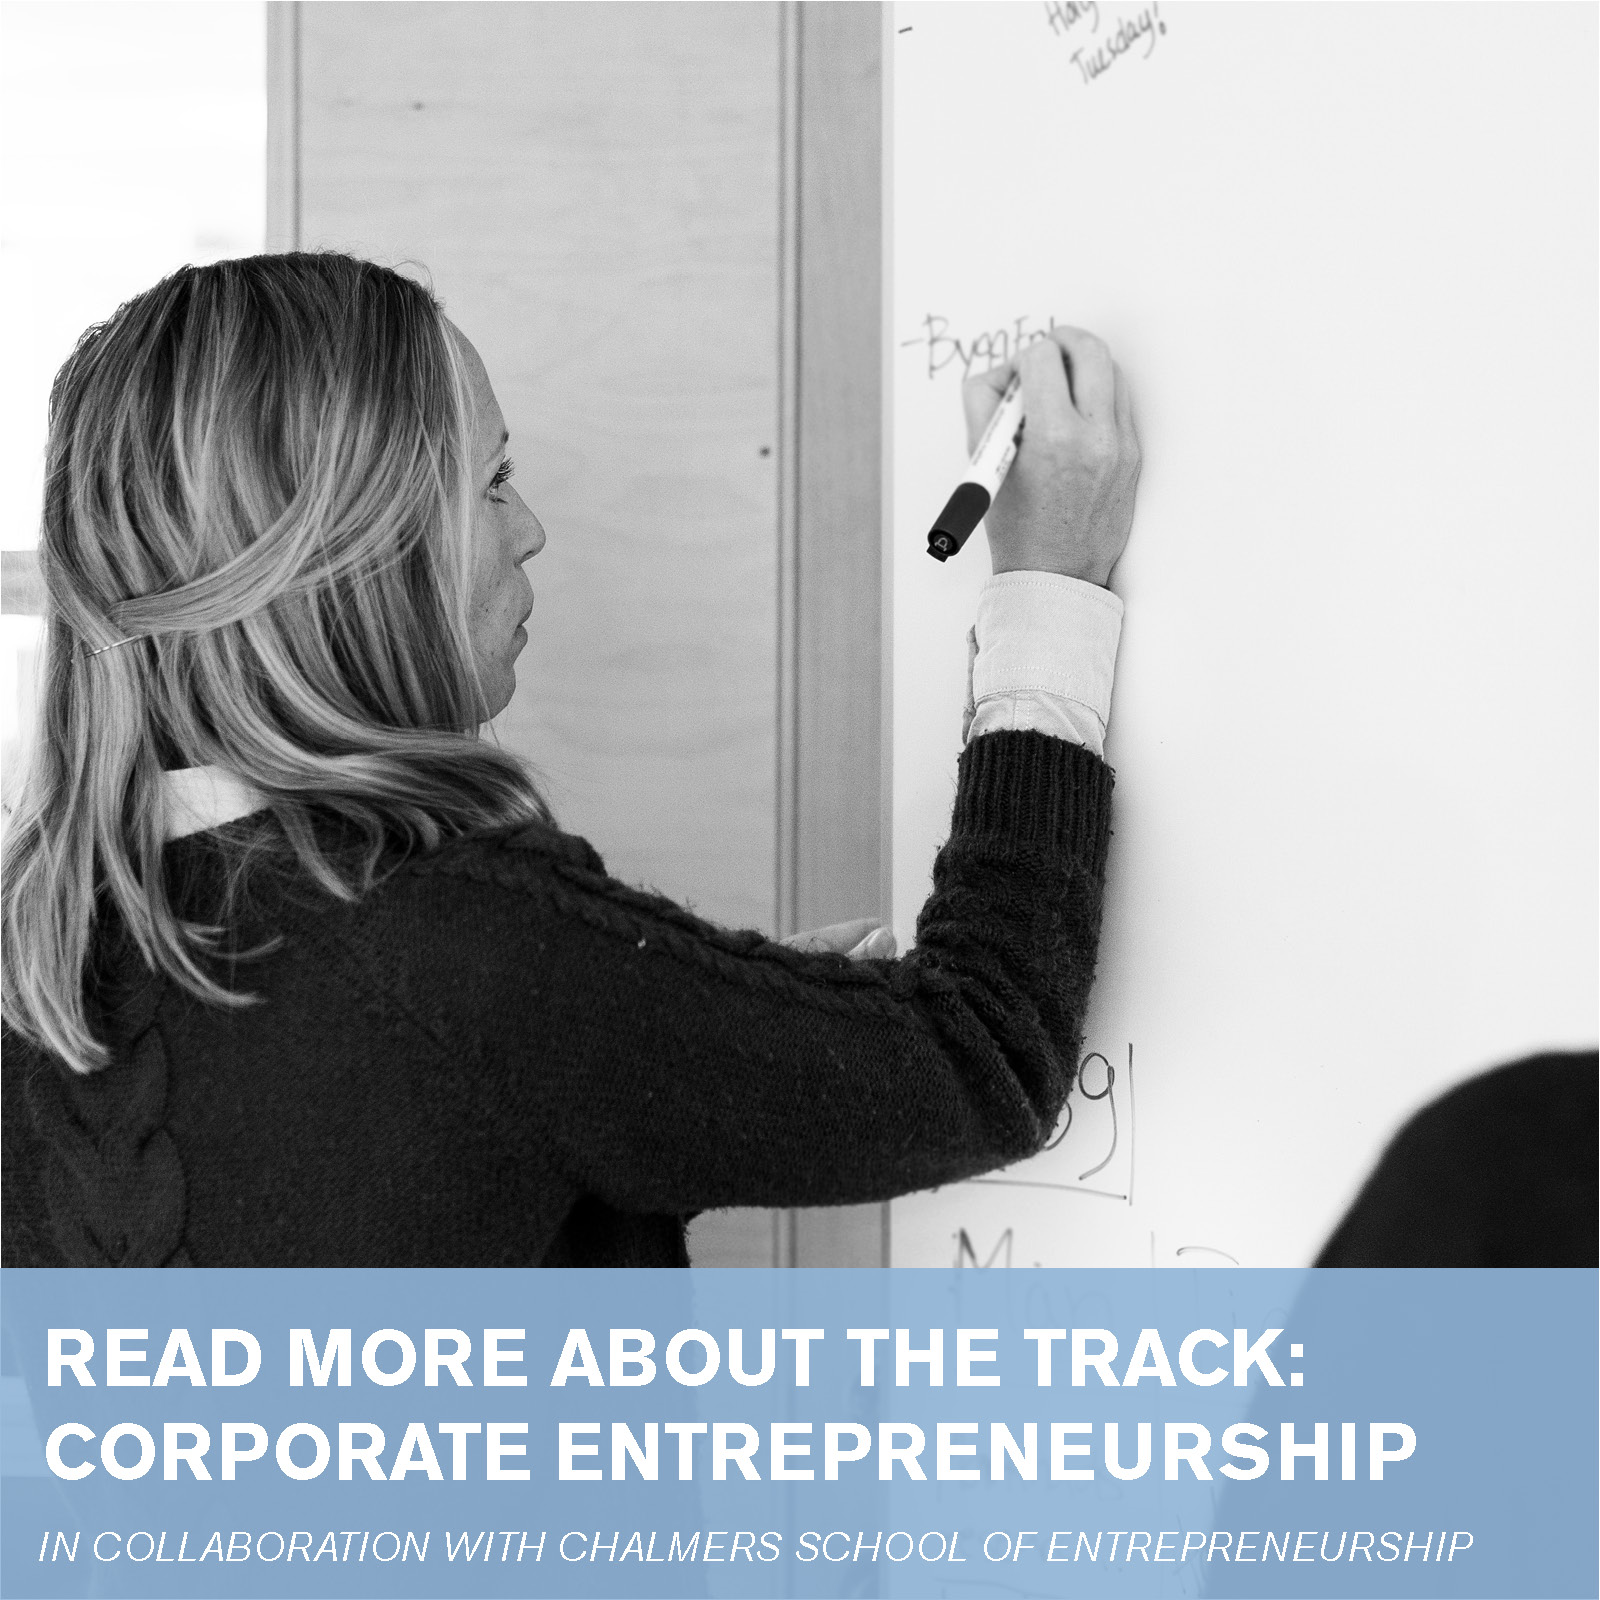 Information about Corporate Entrepreneurship track